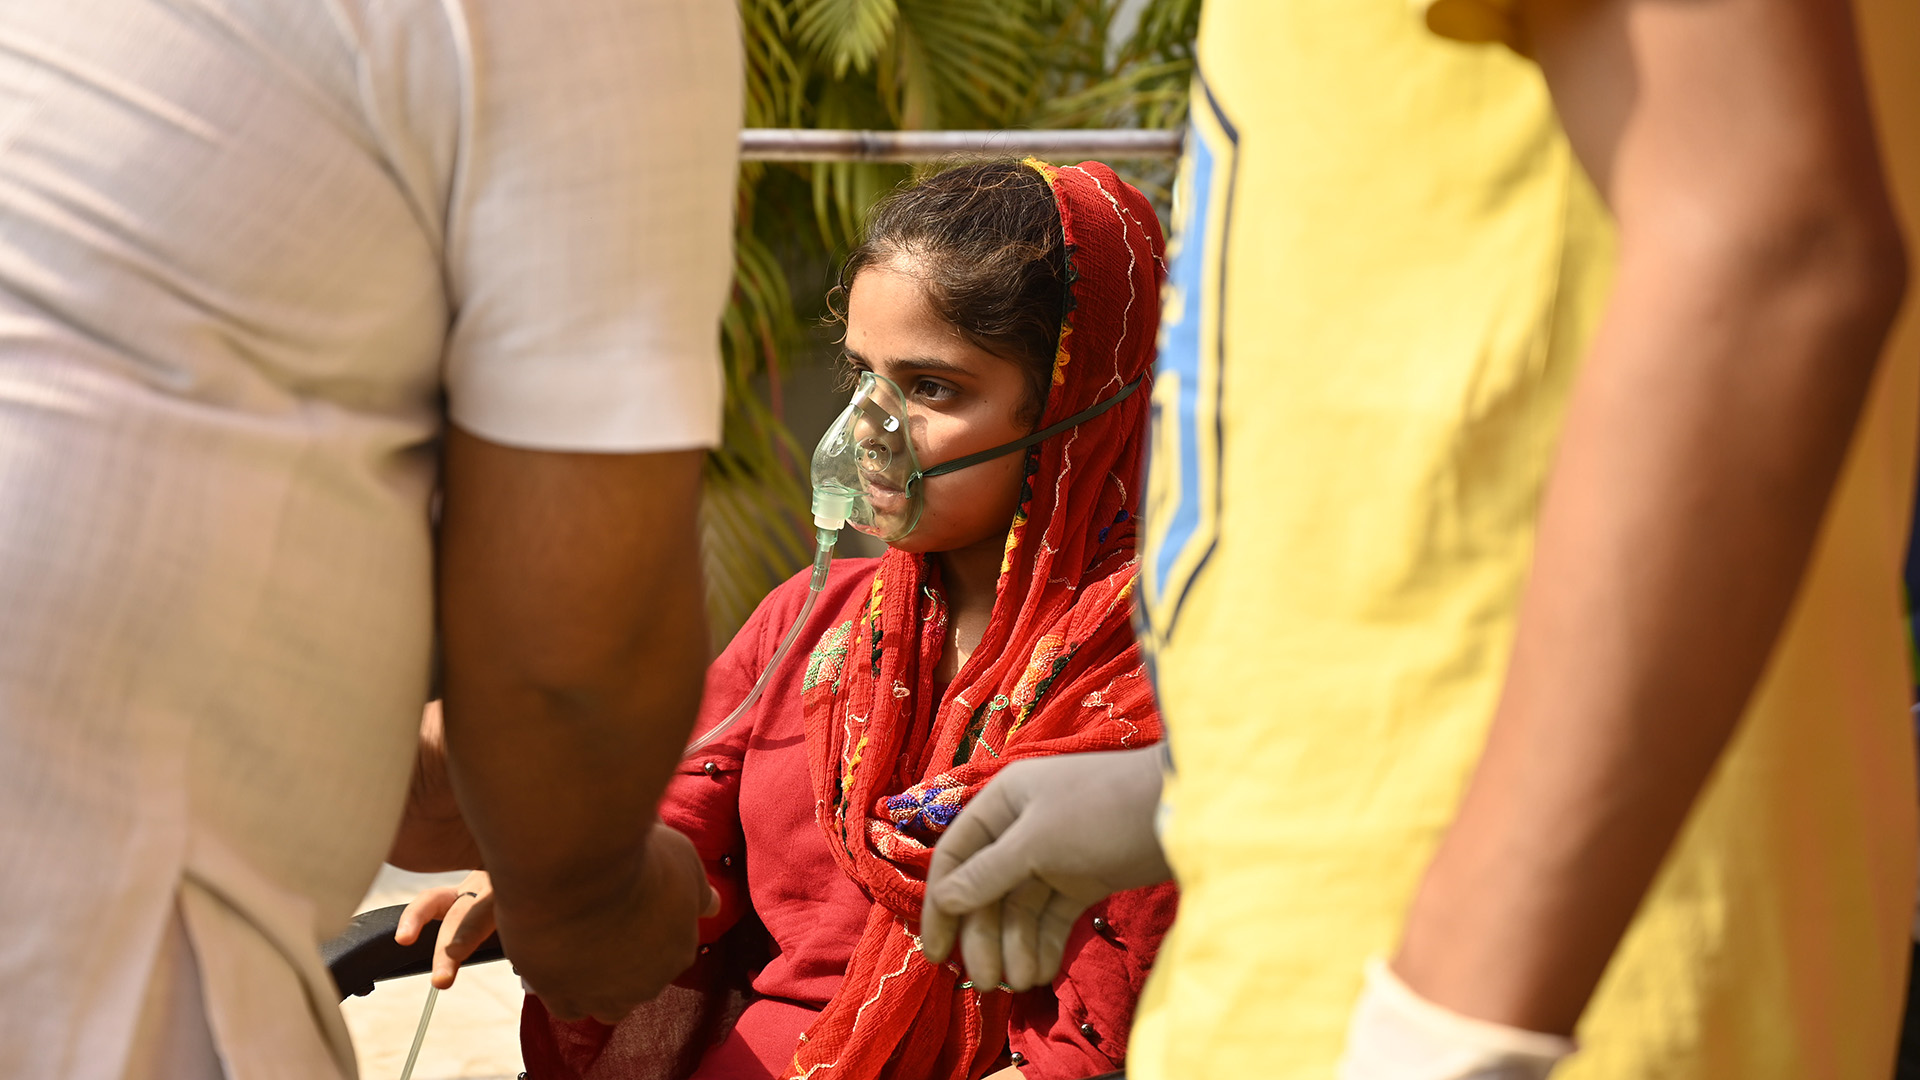 VIDEO: As India's Covid Patients Gasp For Air, Charities Step In Where Bureaucrats Fail